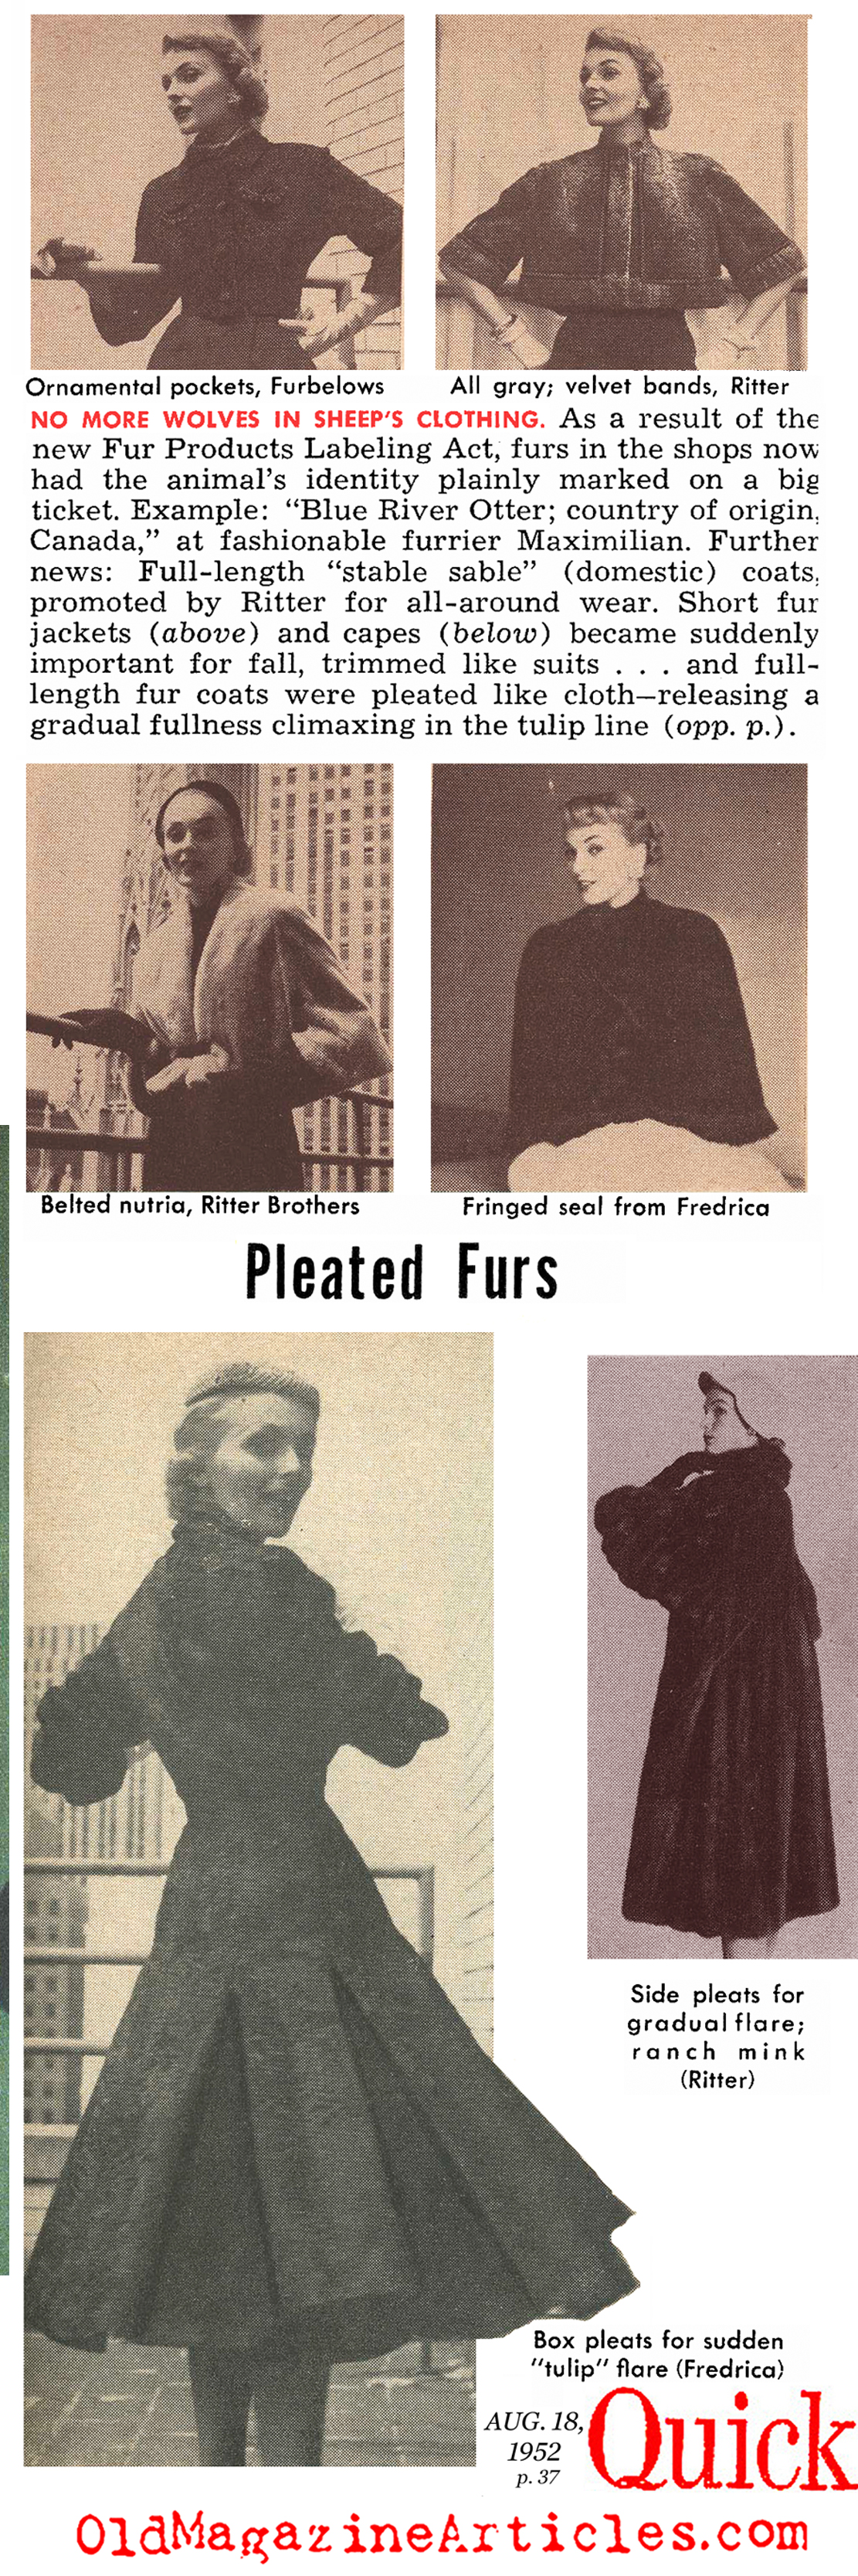 Article Fashion Google Search: Old Magazine Articles